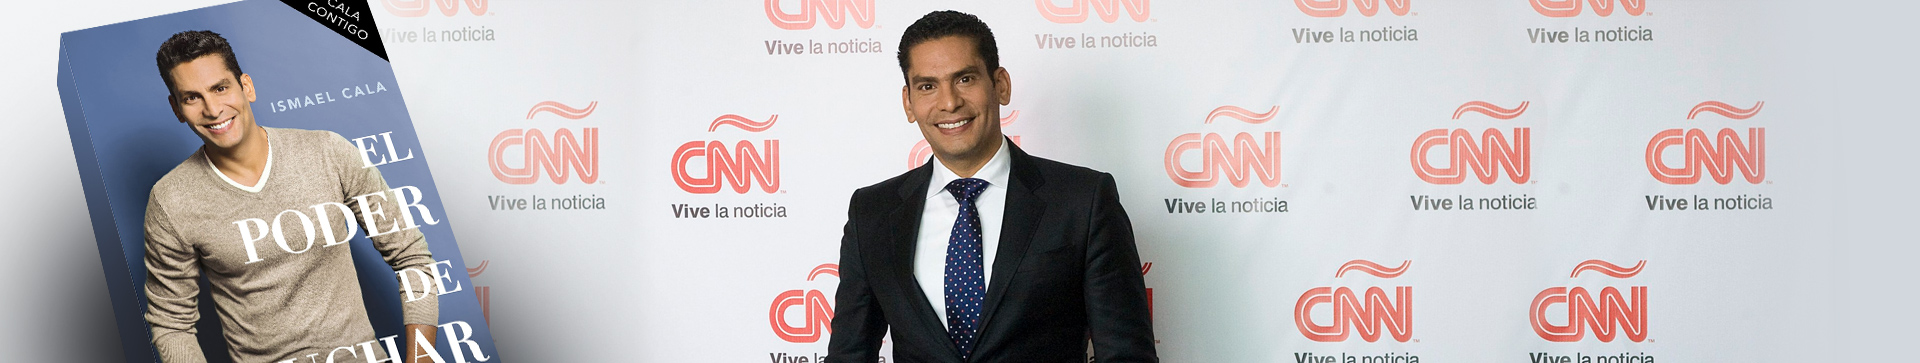 Ismael Cala CNN - newsletter